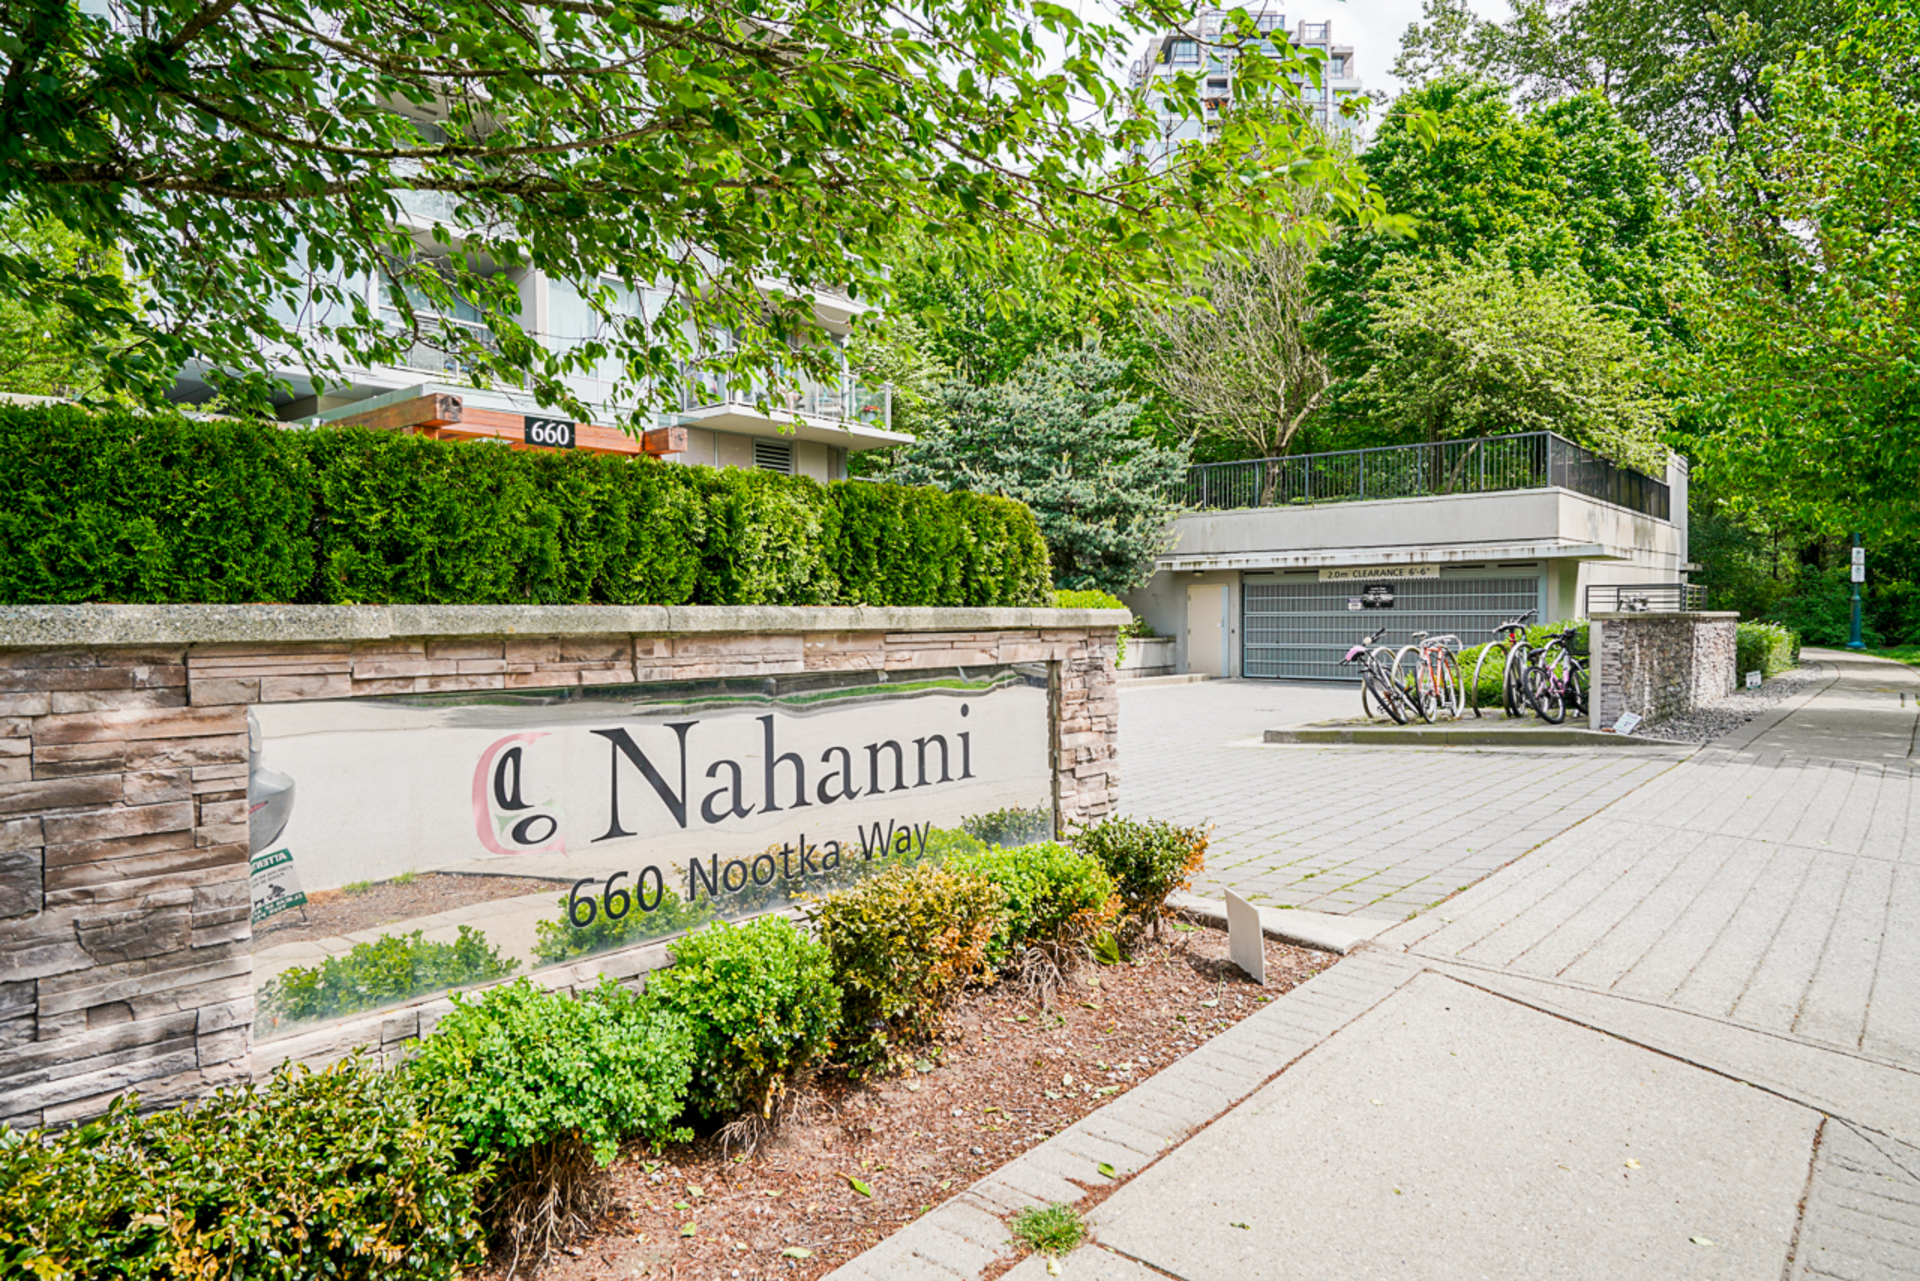 unit-2108-660-nootka-way-port-moody-5 of 2108 - 660 Nootka Way, Port Moody Centre, Port Moody